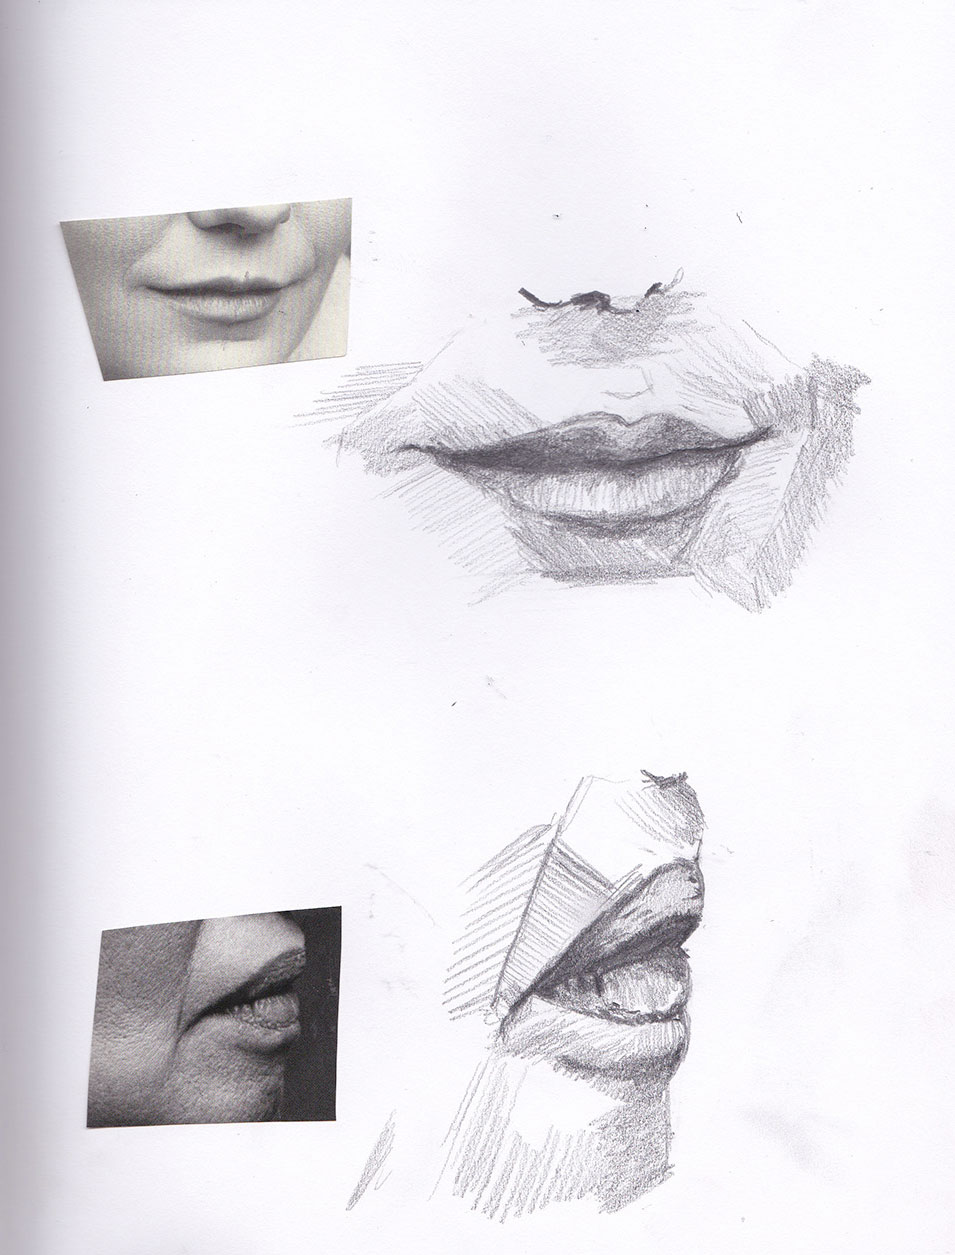 Feature Study - Lips